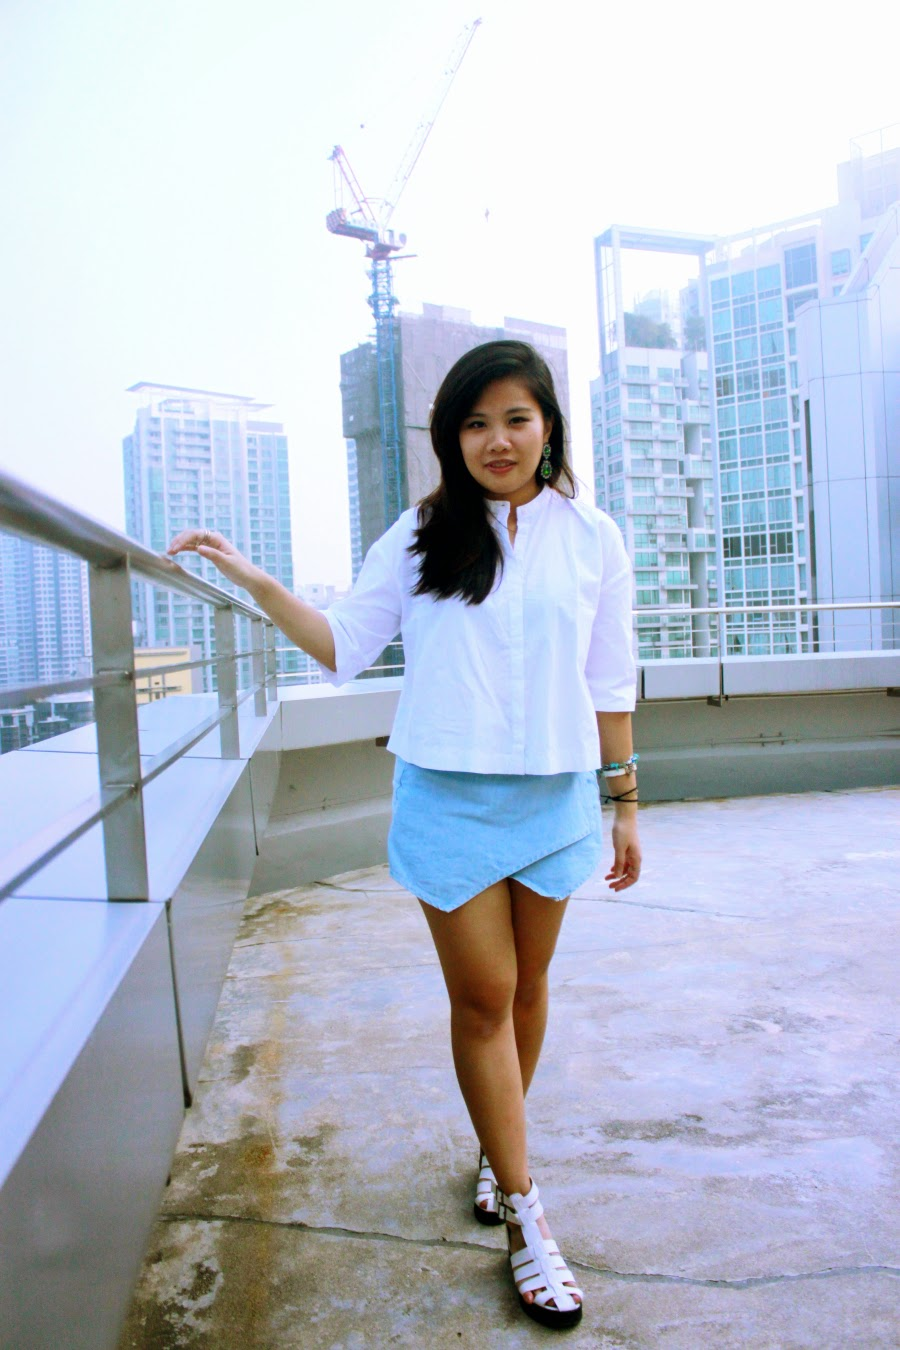 ootd, lookbook, accessories, xincerely, singapore blogger, photography